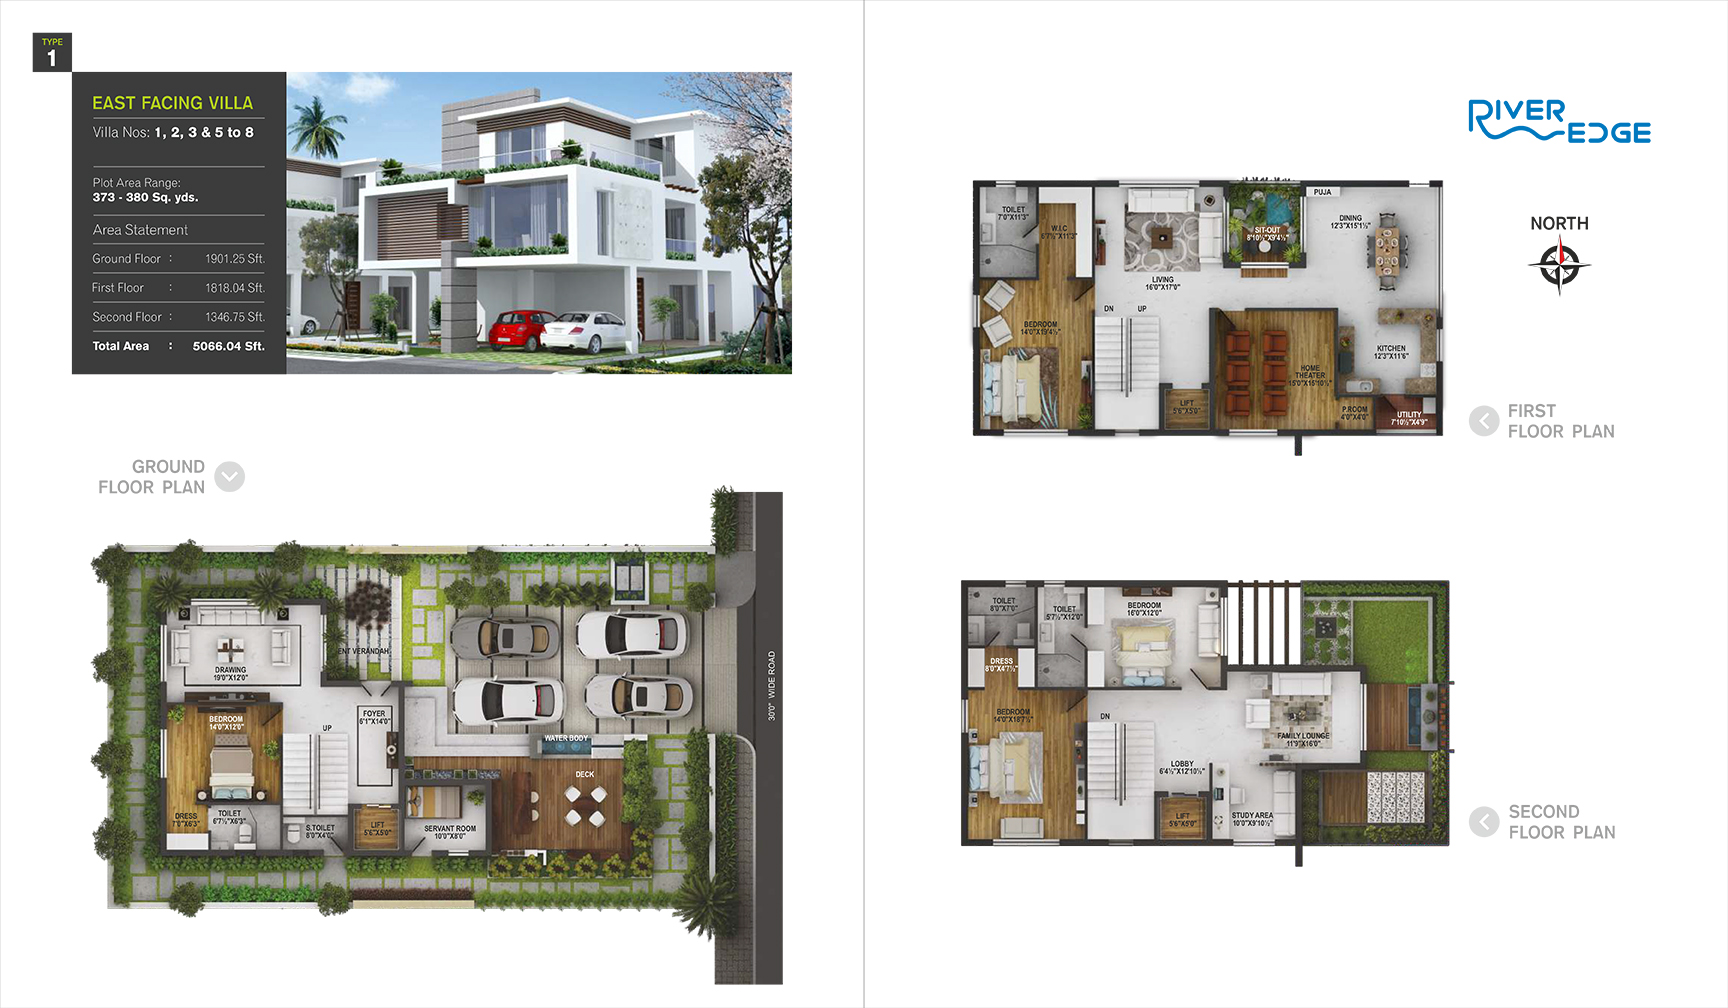 RiverEdge floorplan 5066.05sqft east facing